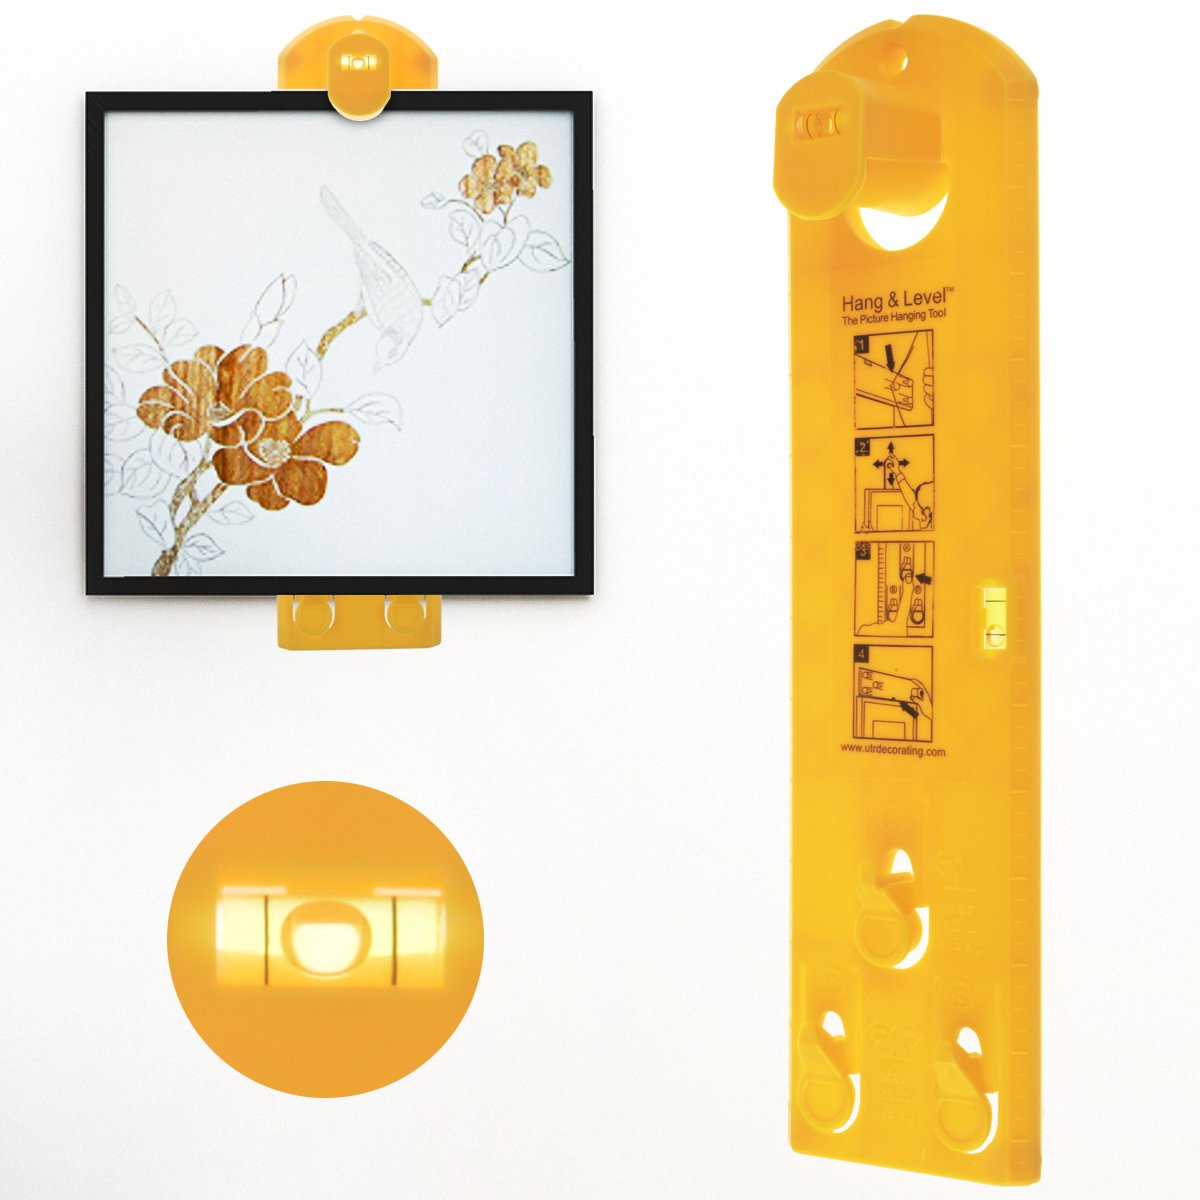 Picture Hanging Tool, WeGuard Vertical and Horizontal Levels Suspension Measurement Marking Position Tool, Frame Hanger Tool For All Wall Materials - Yellow